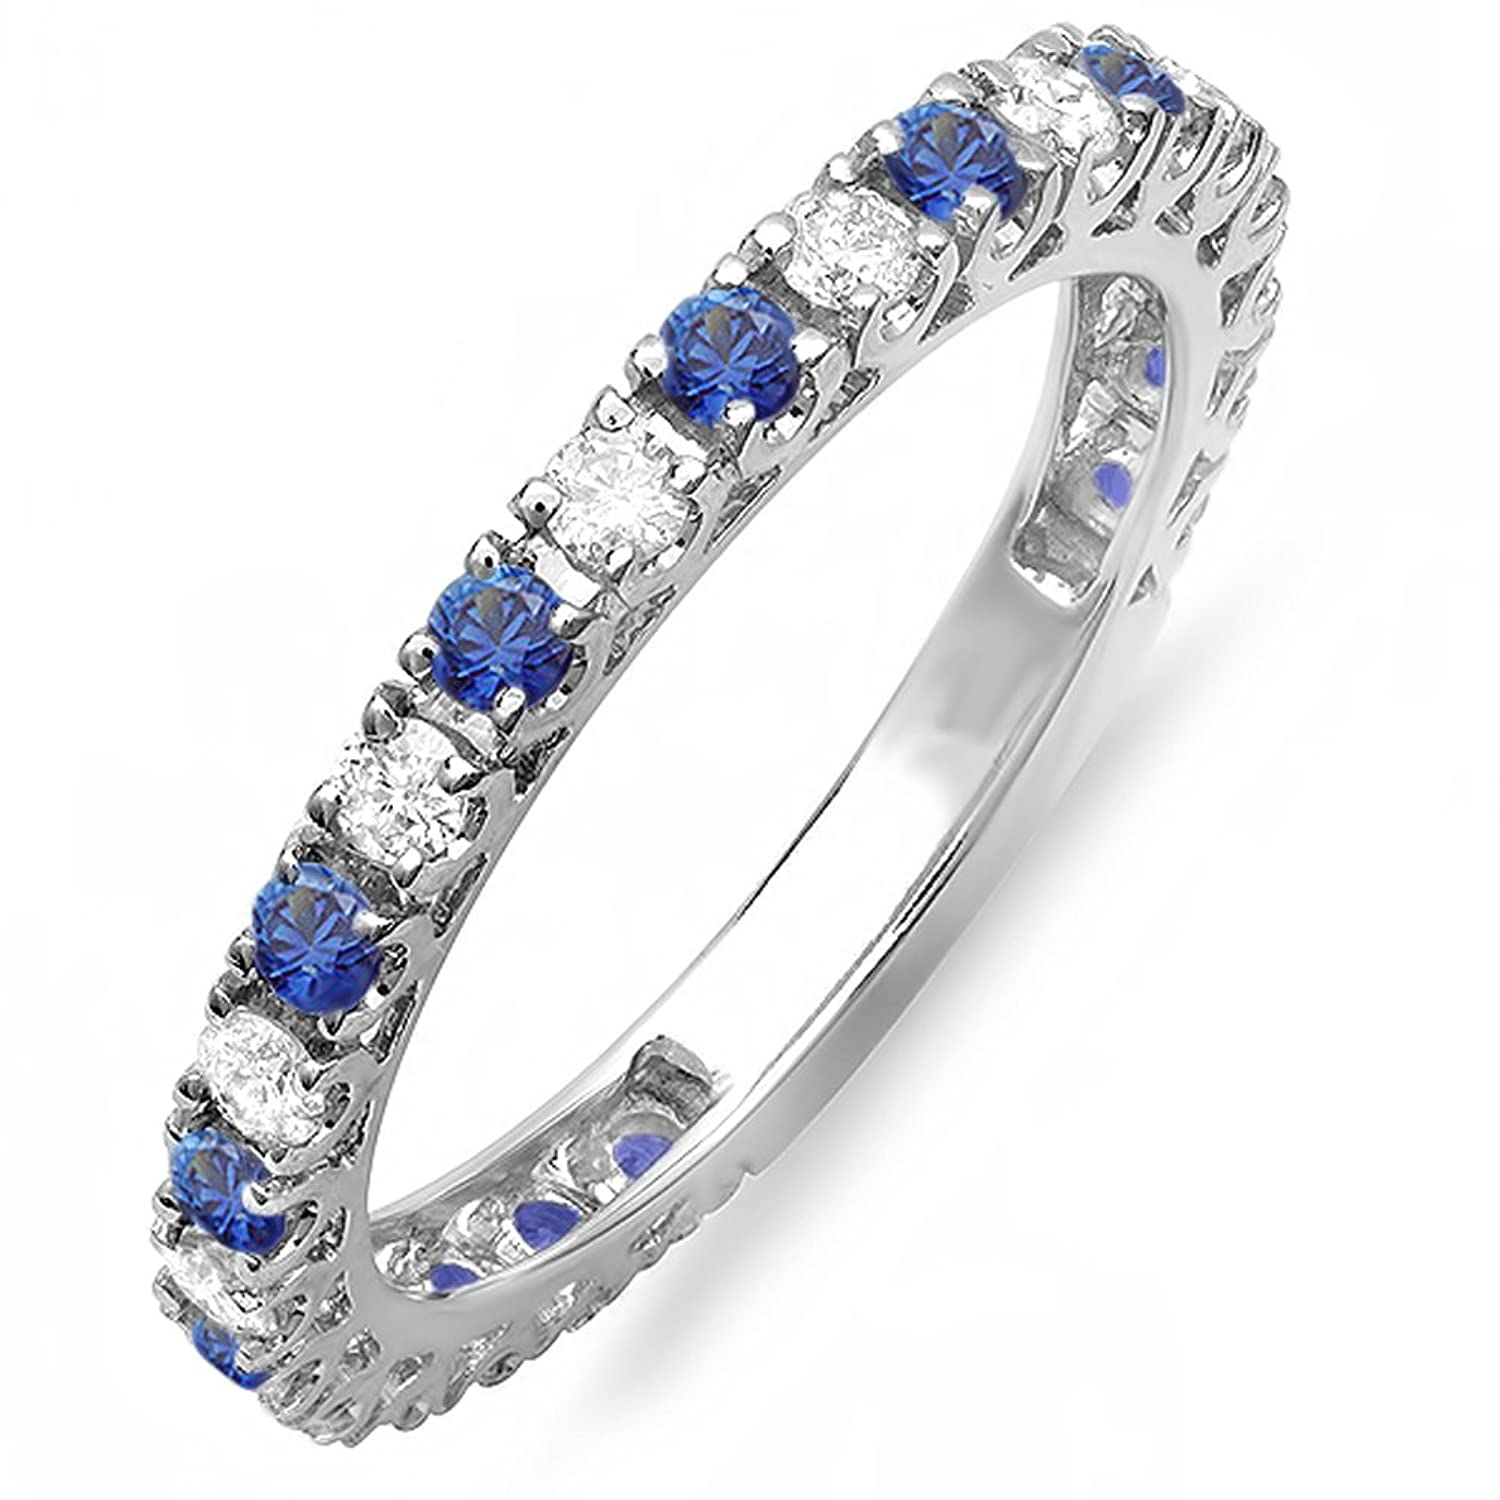 tips ritani band blog bands engagement com for top cut eternity ring classic with an buying emerald diamond diamonds